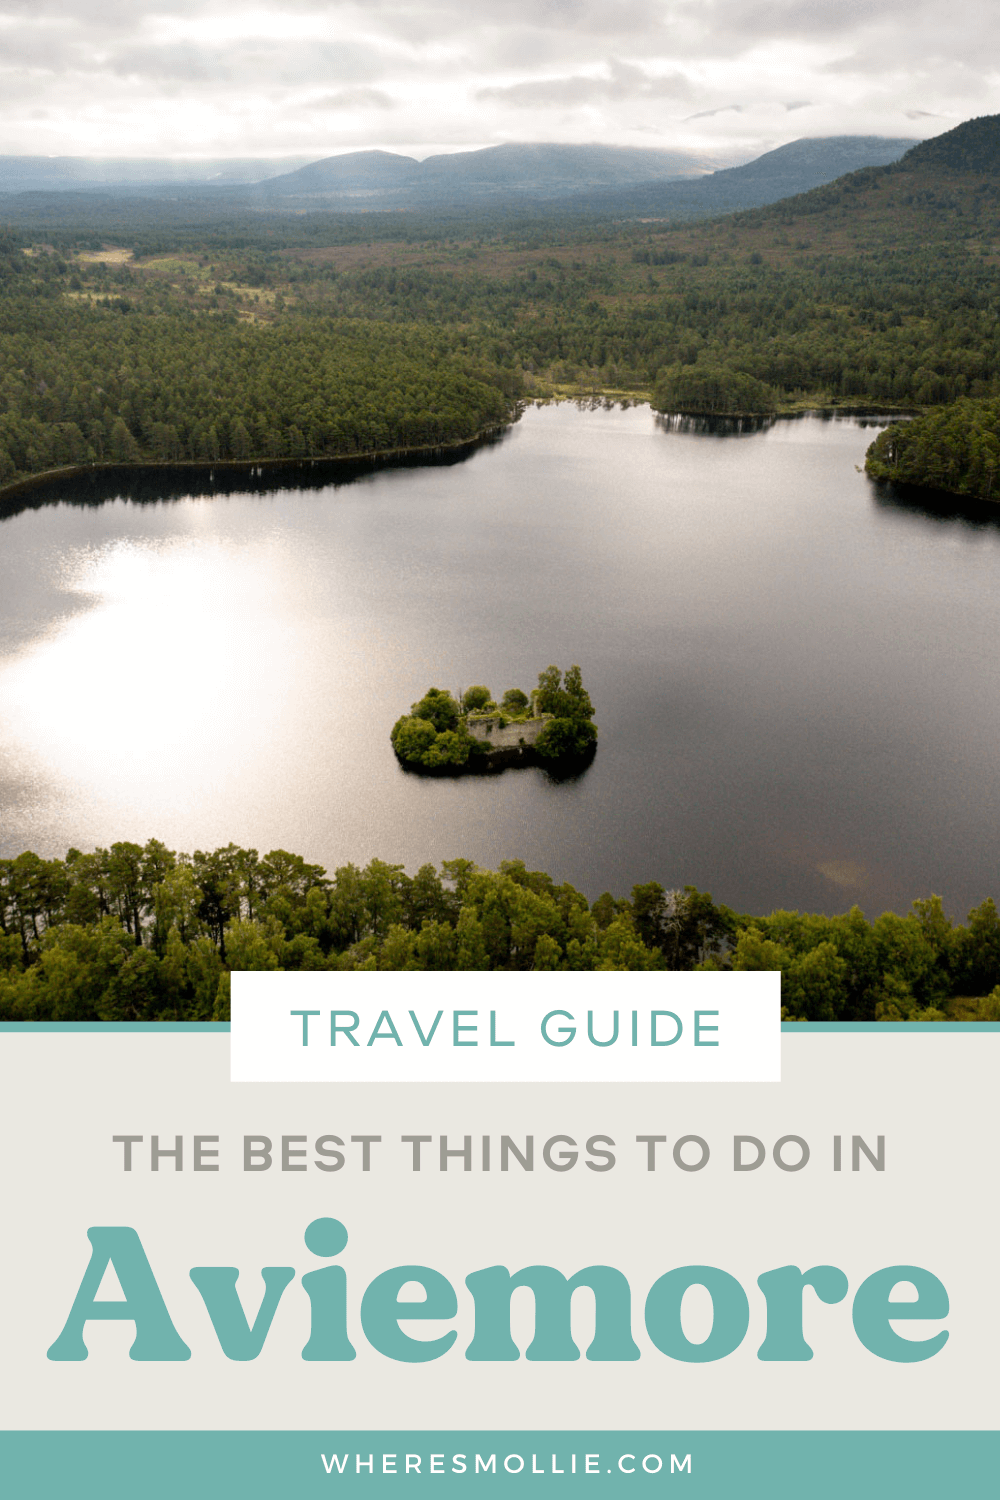 The best things to do in Aviemore, Scotland